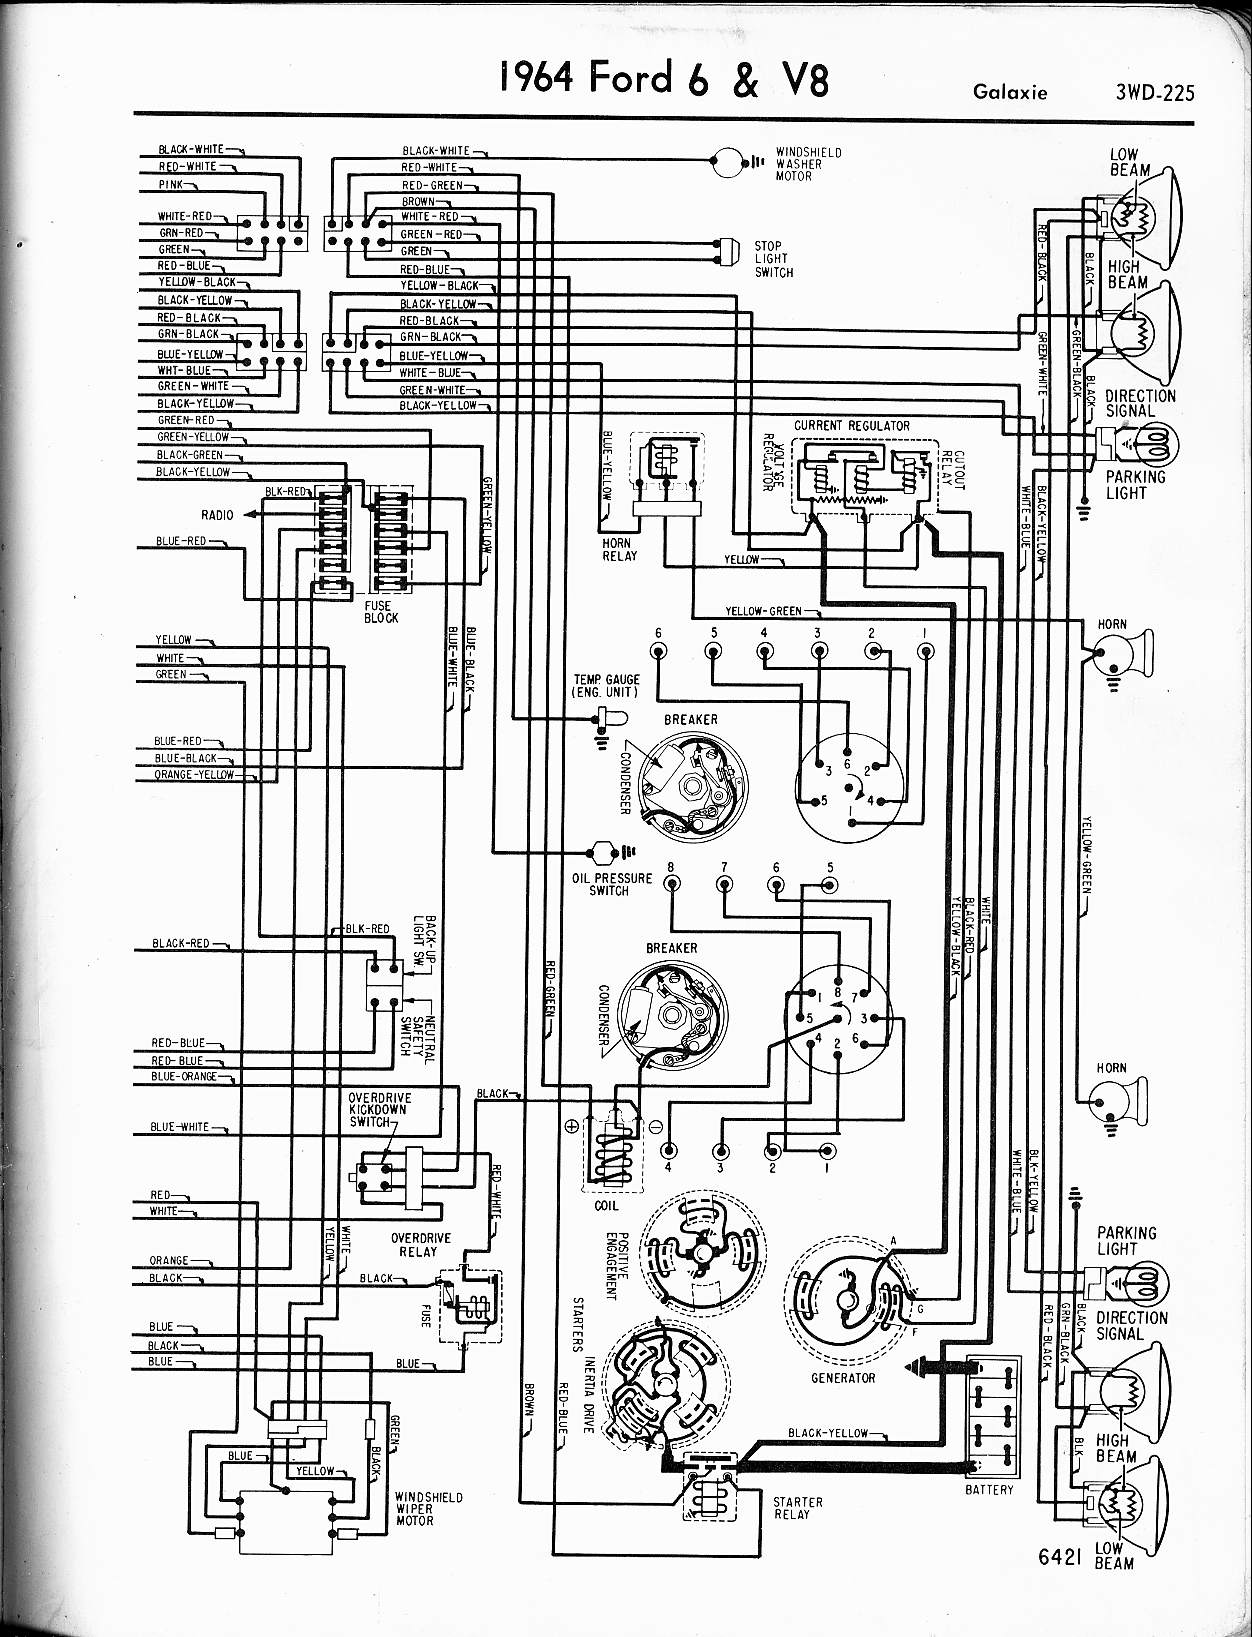 57 65 Ford Wiring Diagrams Club Car 4 Battery Diagram Free Picture 1964 6 V8 Galaxie Right